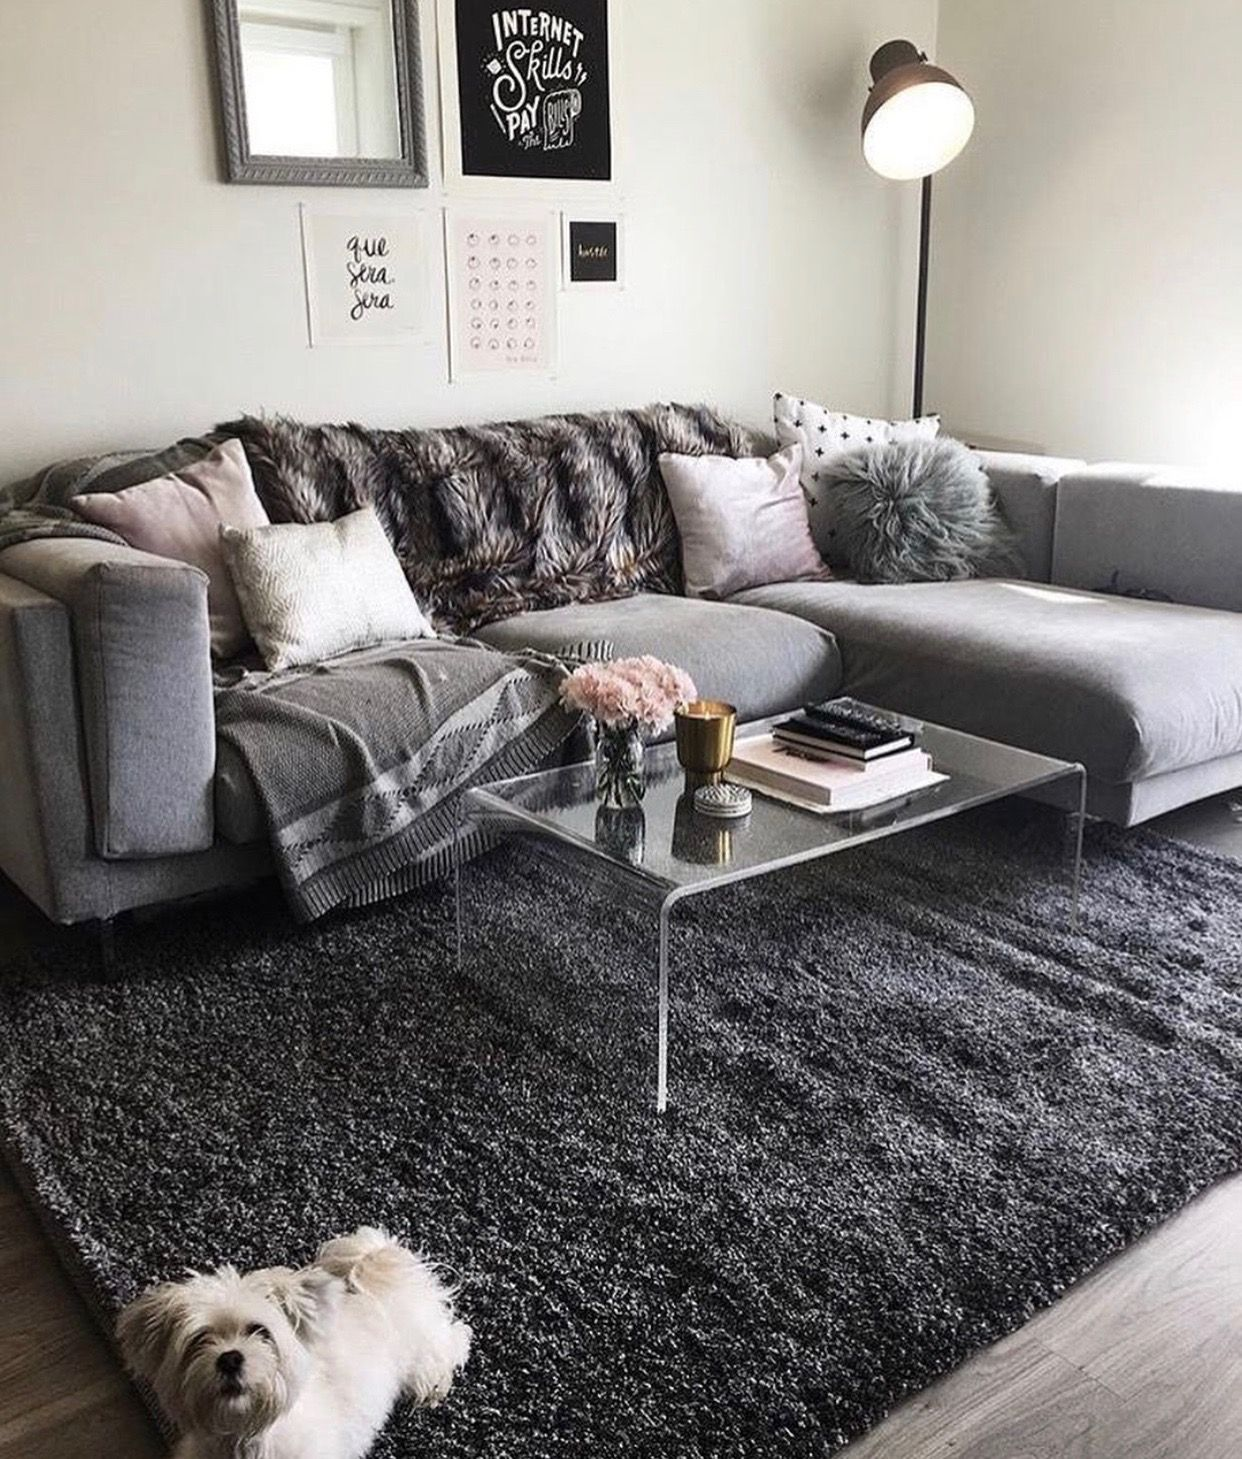 46 Cozy Living Room Ideas And Designs For 2019: $ 𝙥𝙞𝙣 : @ 𝙙𝙚𝙚𝙨𝙩𝙞𝙣𝙚𝙚𝙮 💛